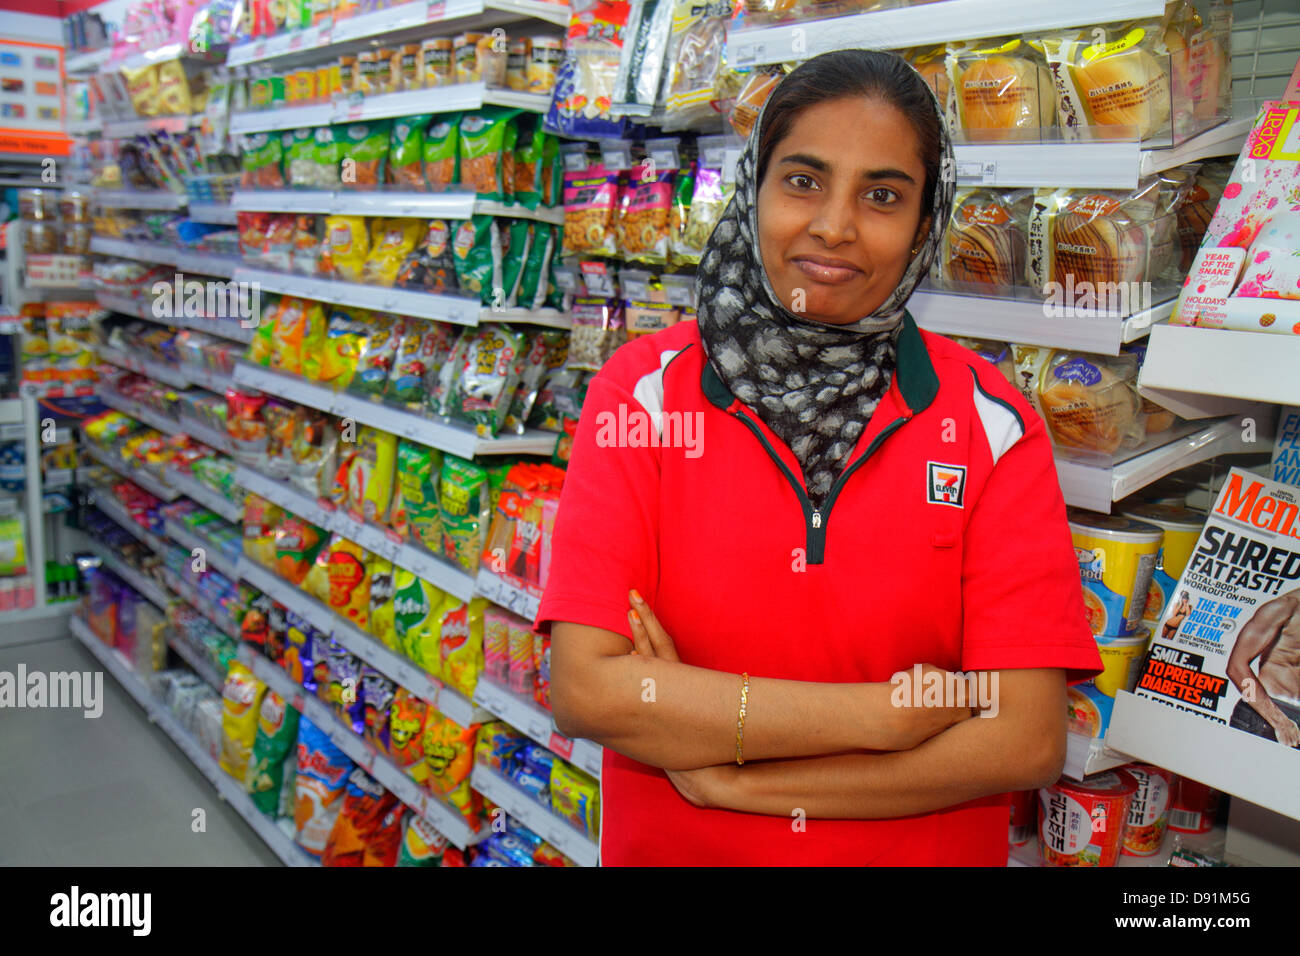 Singapore Kampong Glam Muslim Quarter Arab Street 7-Eleven convenience store business inside interior Asian woman - Stock Image